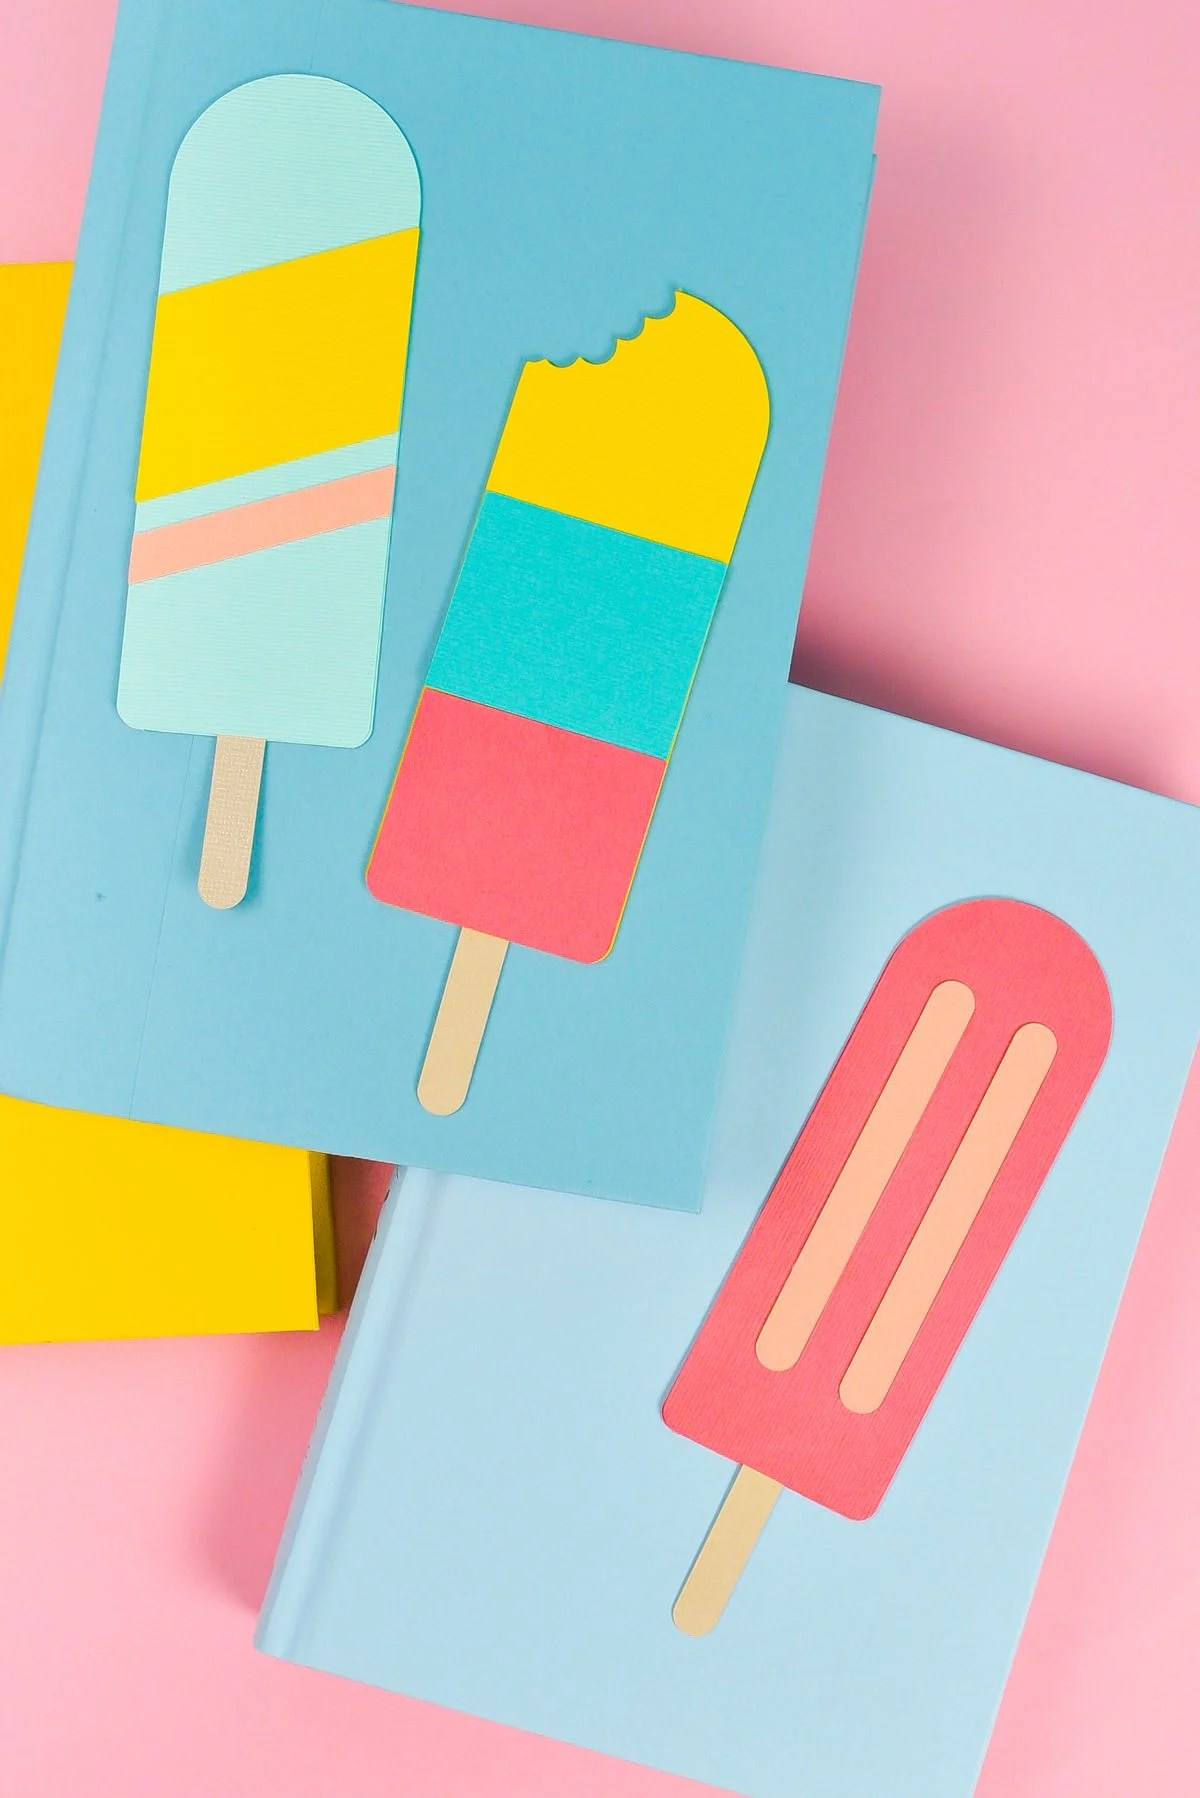 Final popsicle bookmarks styled with bright books on a pink background